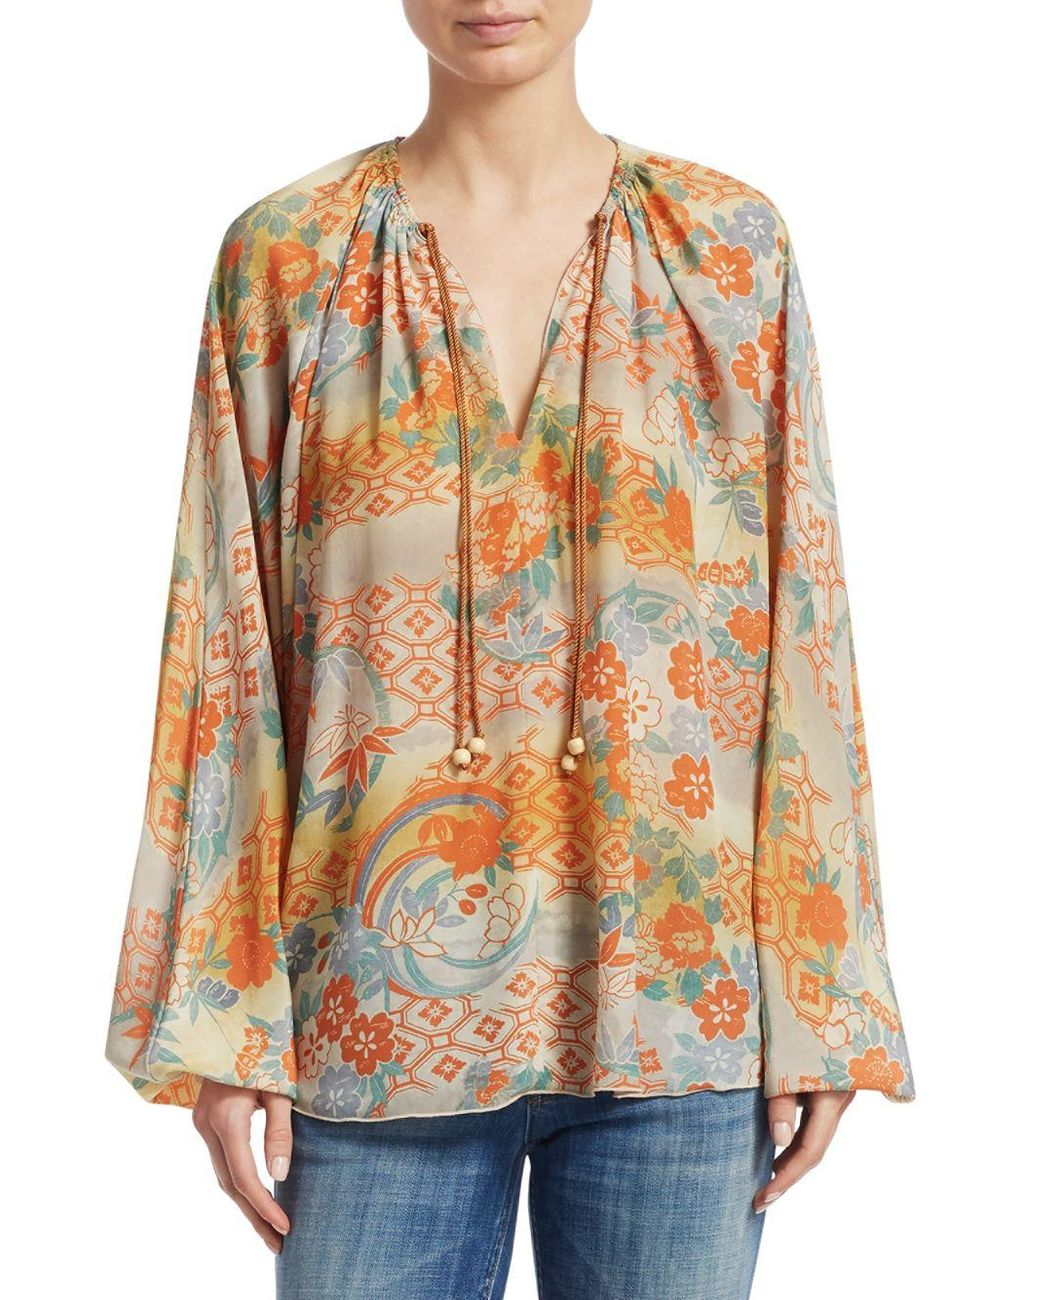 9cee7a20481551 Long-Touch to Zoom. Long-Touch to Zoom. 1; 2; 3; 4. Elizabeth and James - Multicolor  Chance Printed Silk Blouse ...